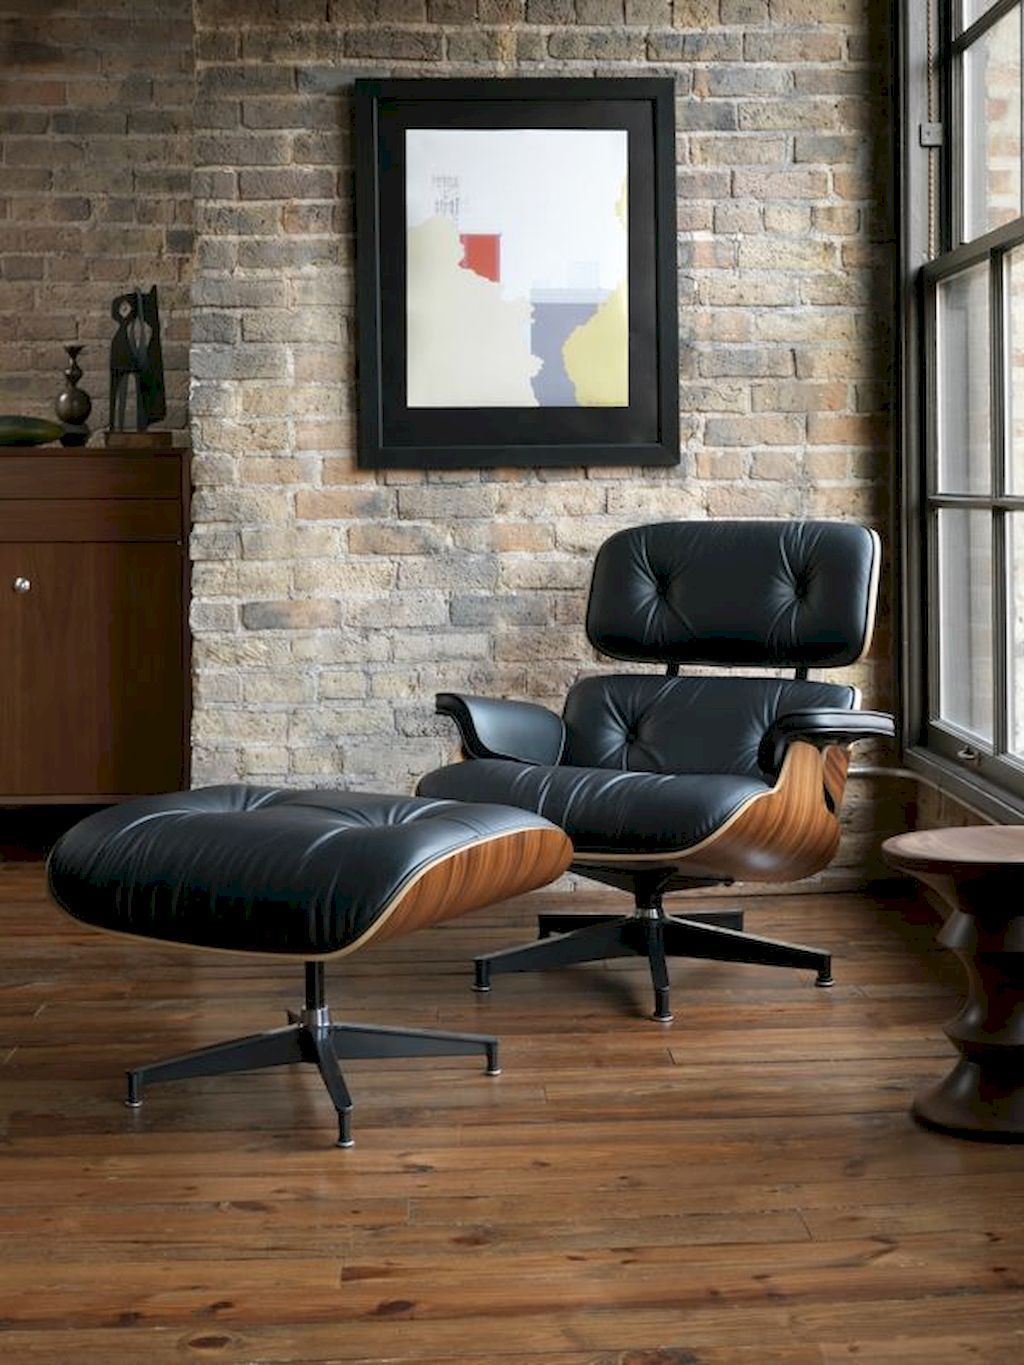 Elevate your interior with mid century modern furniture and lighting they complement each other just perfect isnt it www delightfull eu visit us for